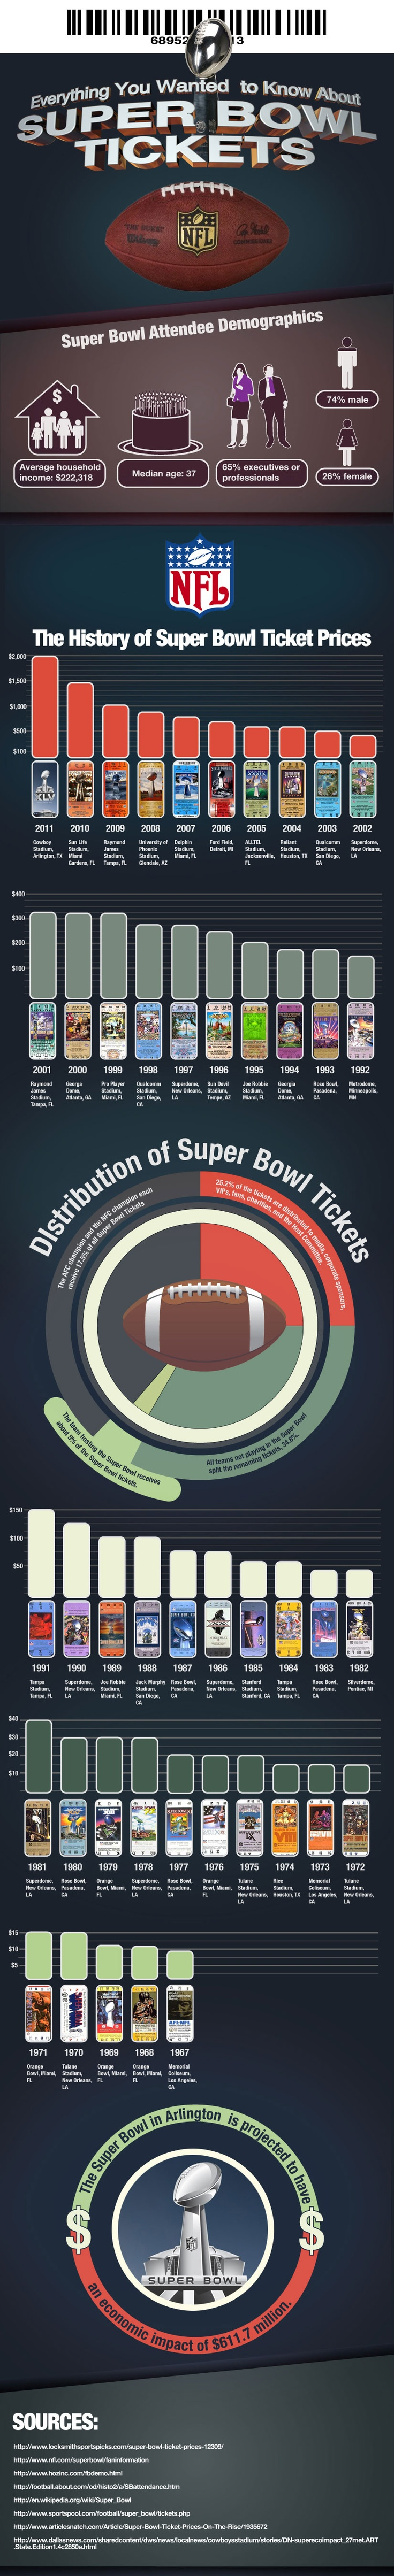 best 25 super bowl quotes ideas on pinterest pats game time